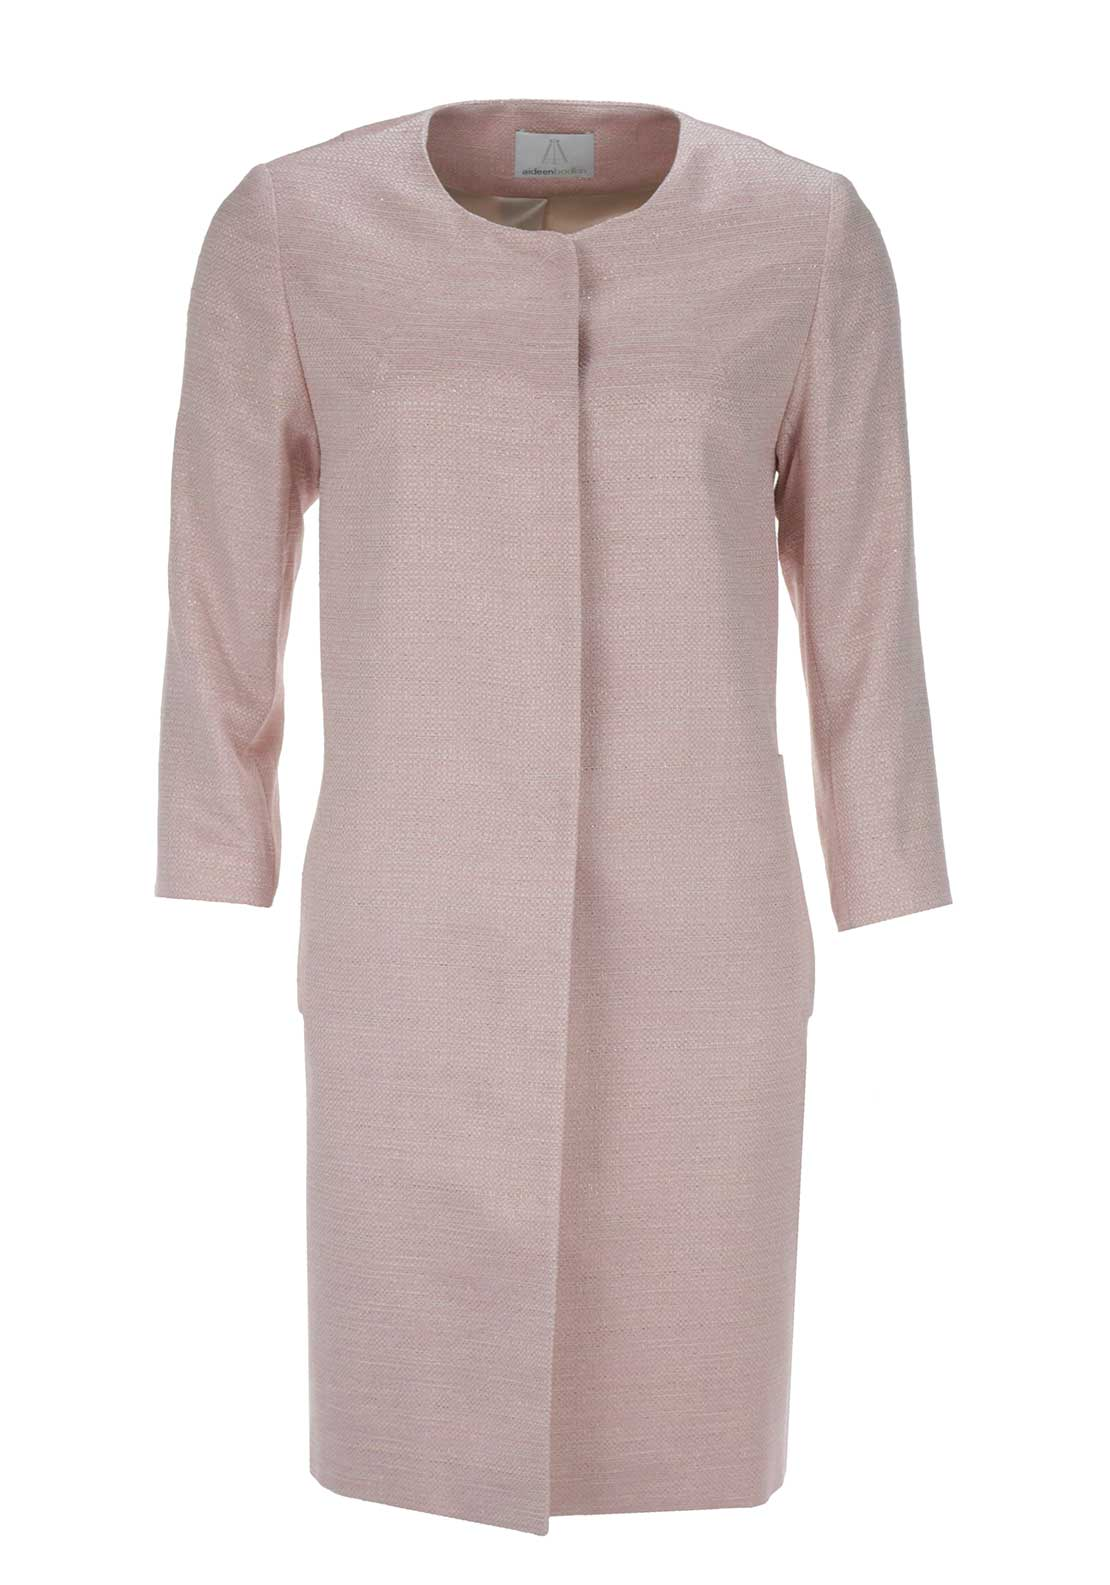 Aideen Bodkin Uno Metallic Sparkle Coat, Pink